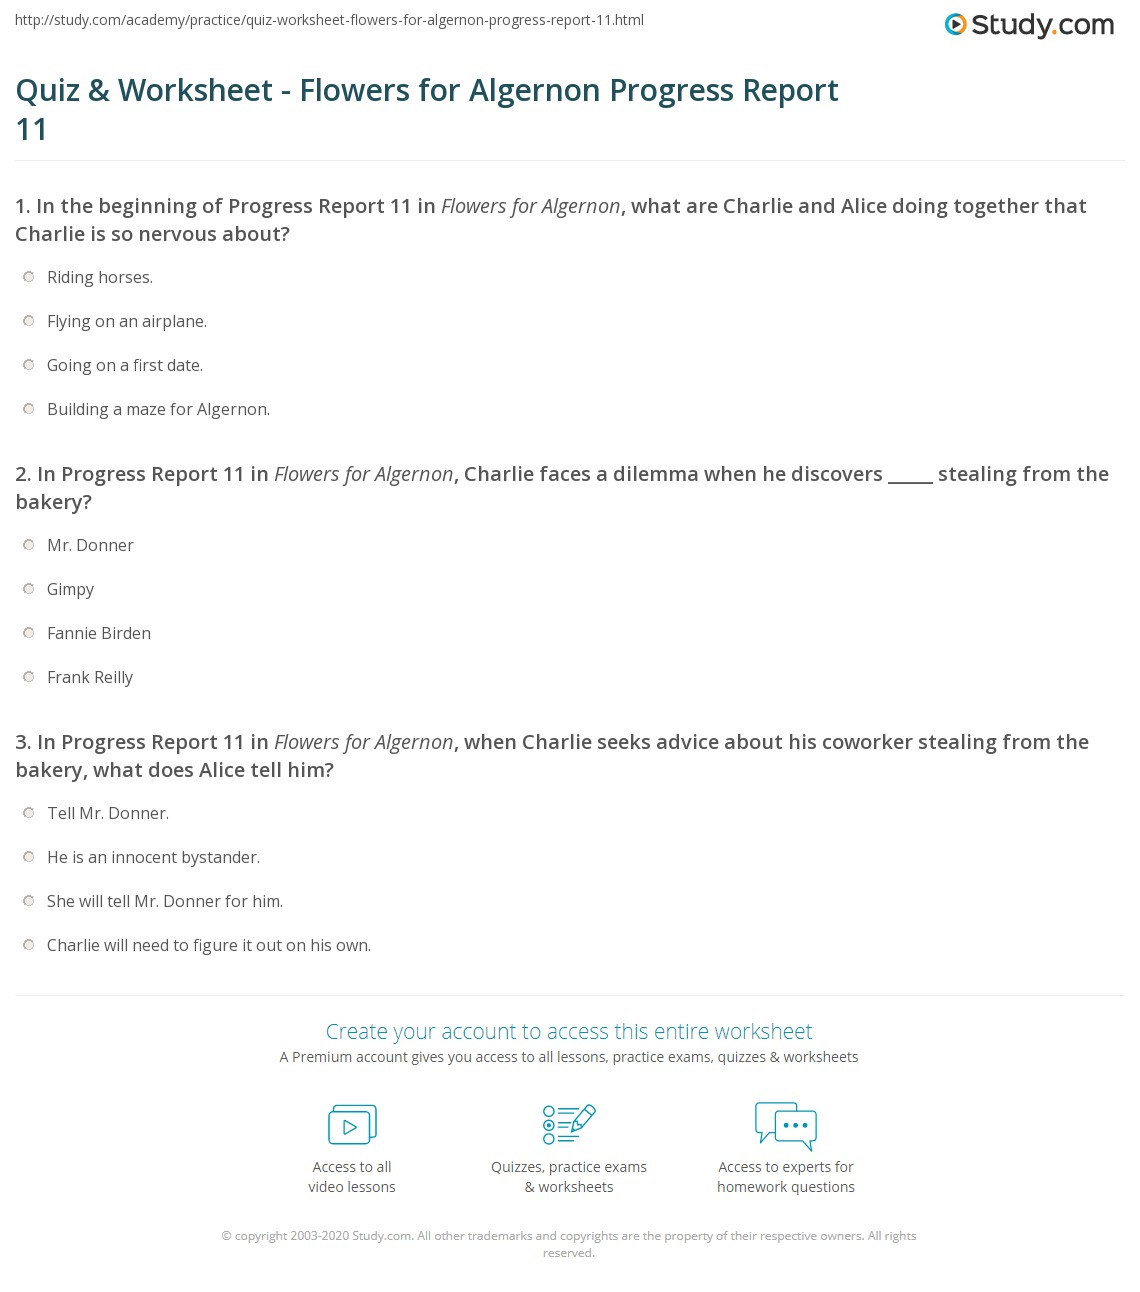 quiz worksheet flowers for algernon progress report com print flowers for algernon progress report 11 summary worksheet